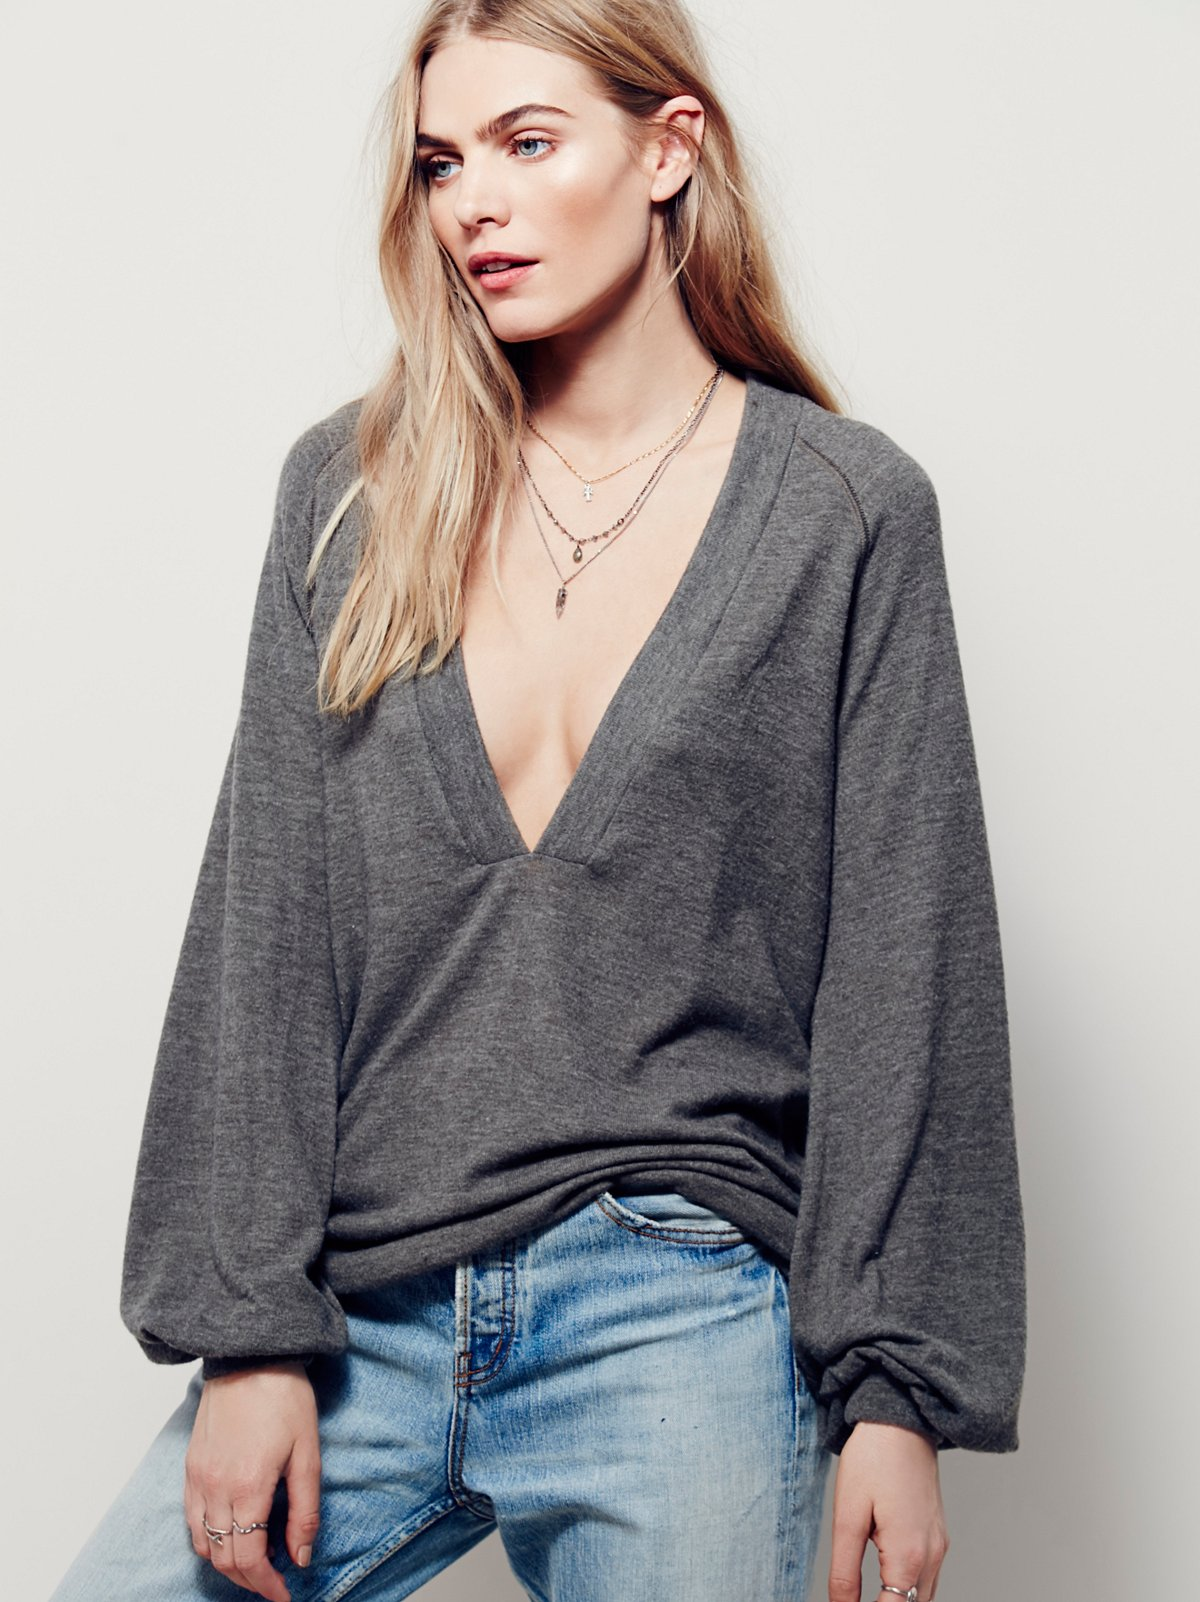 Deep Thoughts Long Sleeve Top